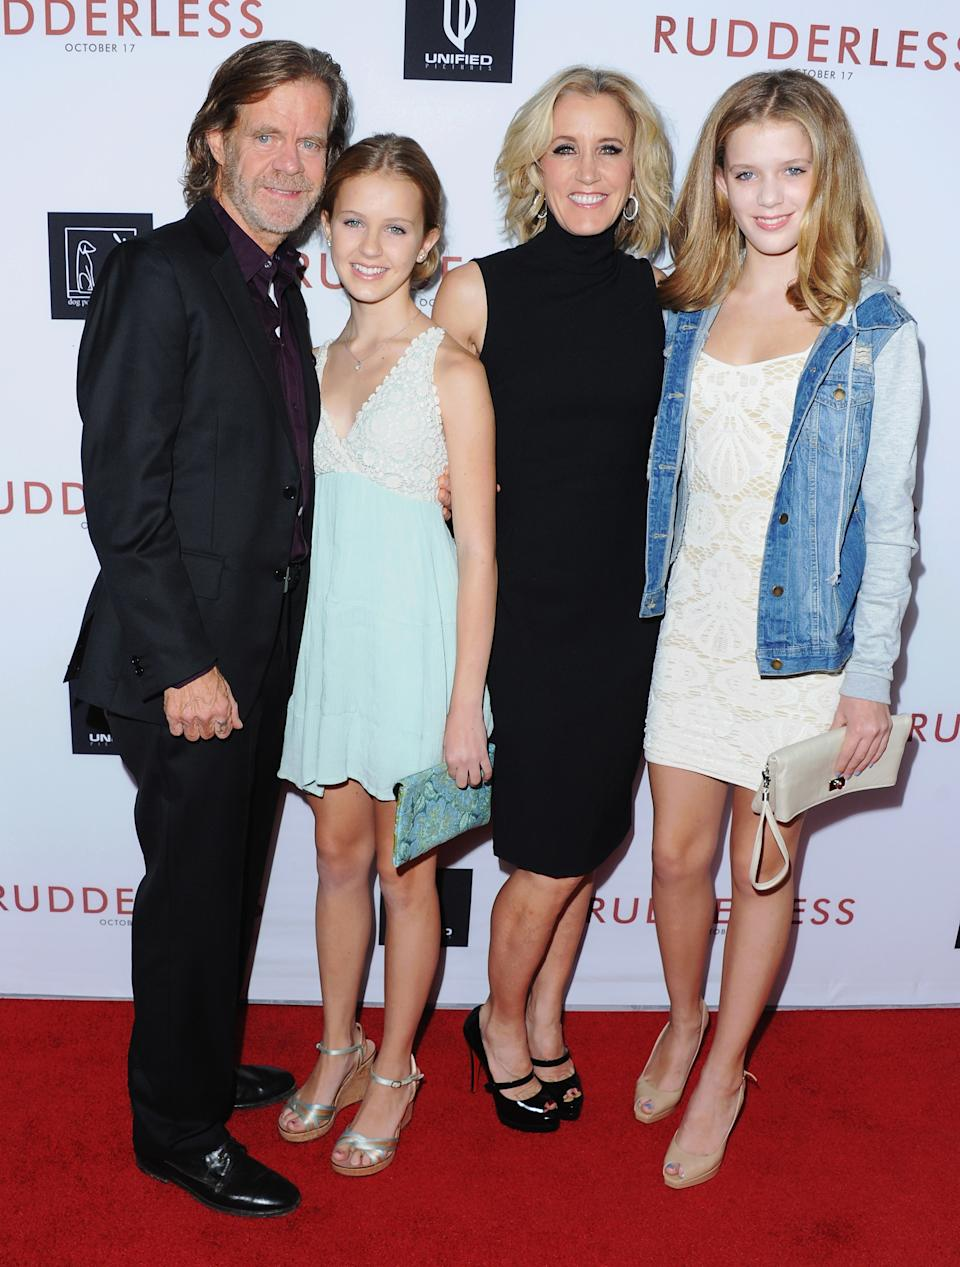 """LOS ANGELES, CA - OCTOBER 07:  Director/actor William H. Macy, daughter Georgia Macy, Actress Felicity Huffman and daughter Sofia Macy arrive at the Los Angeles VIP Screening """"Rudderless"""" at the Vista Theatre on October 7, 2014 in Los Angeles, California.  (Photo by Jon Kopaloff/FilmMagic)"""